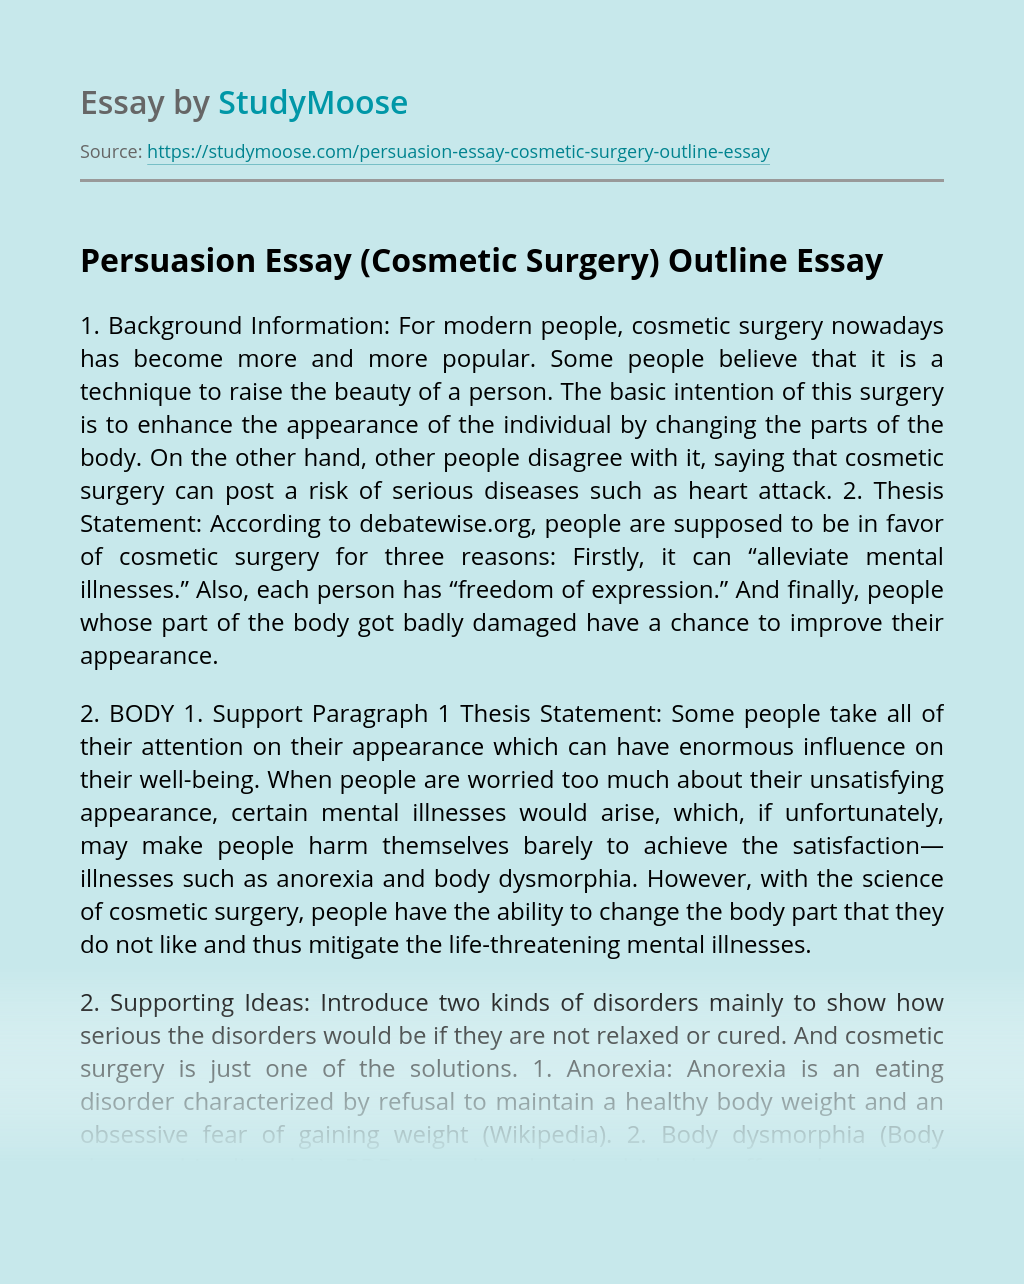 Persuasion Essay (Cosmetic Surgery) Outline